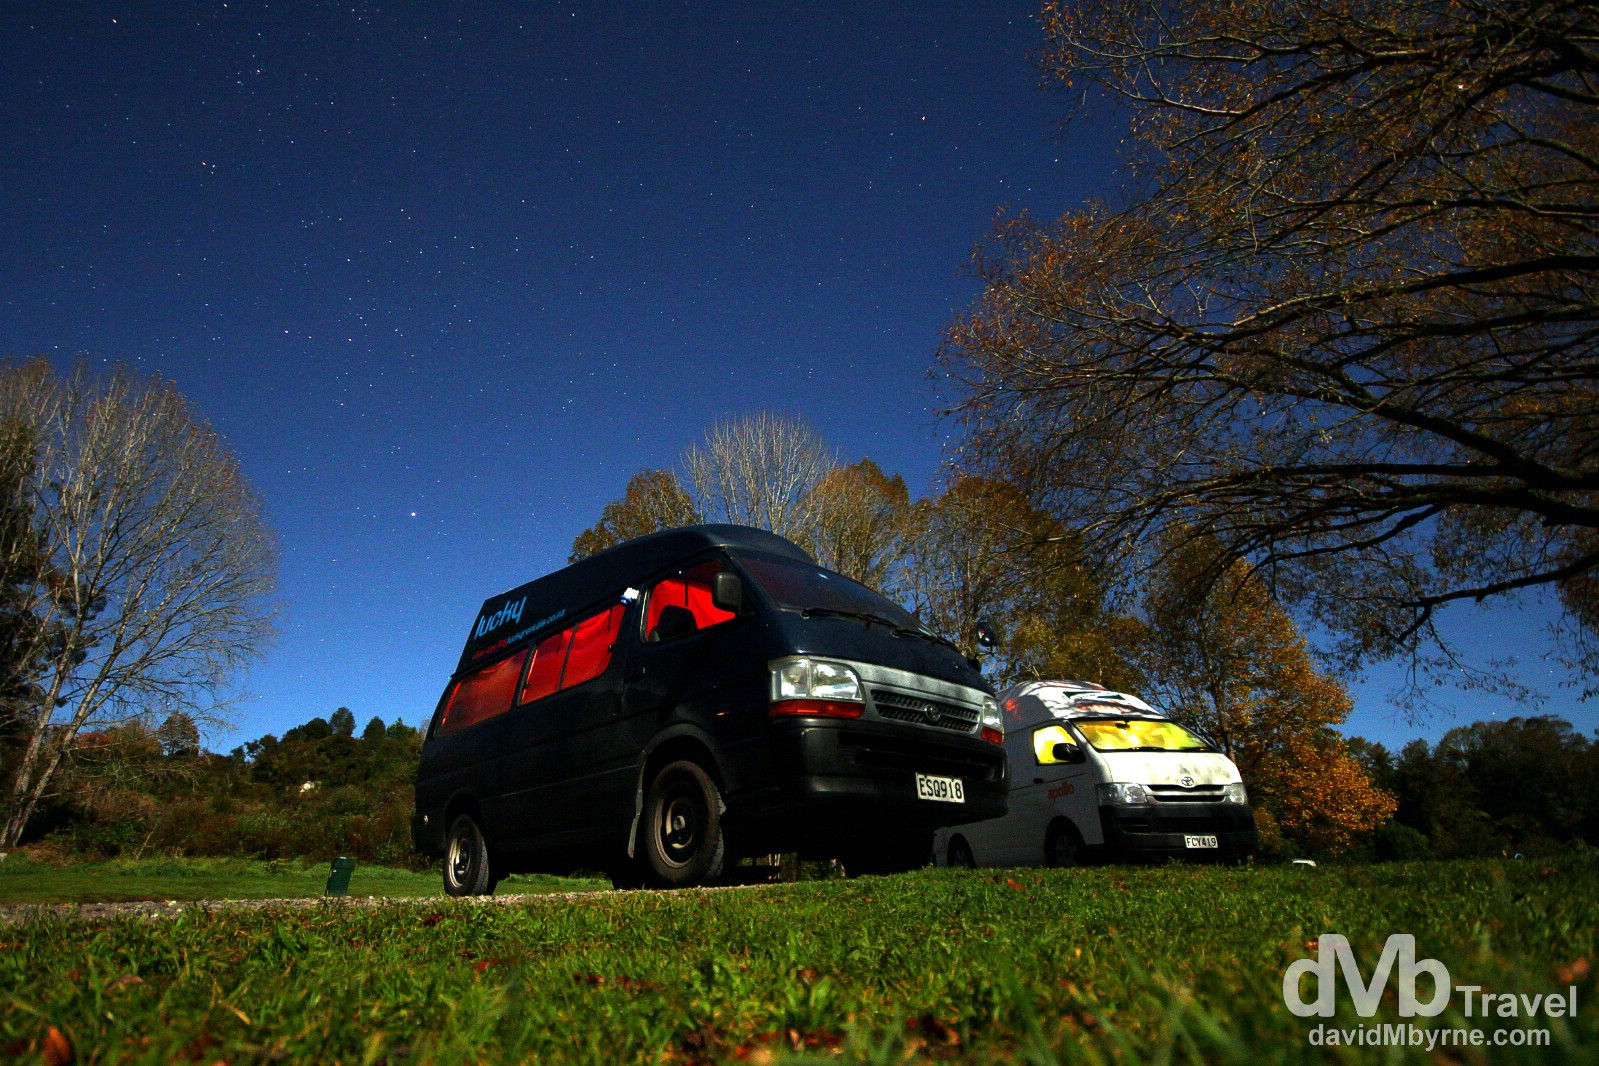 Home. My camper van by the Waikato River, Taupo, North Island, New Zealand. May 6th 2012.